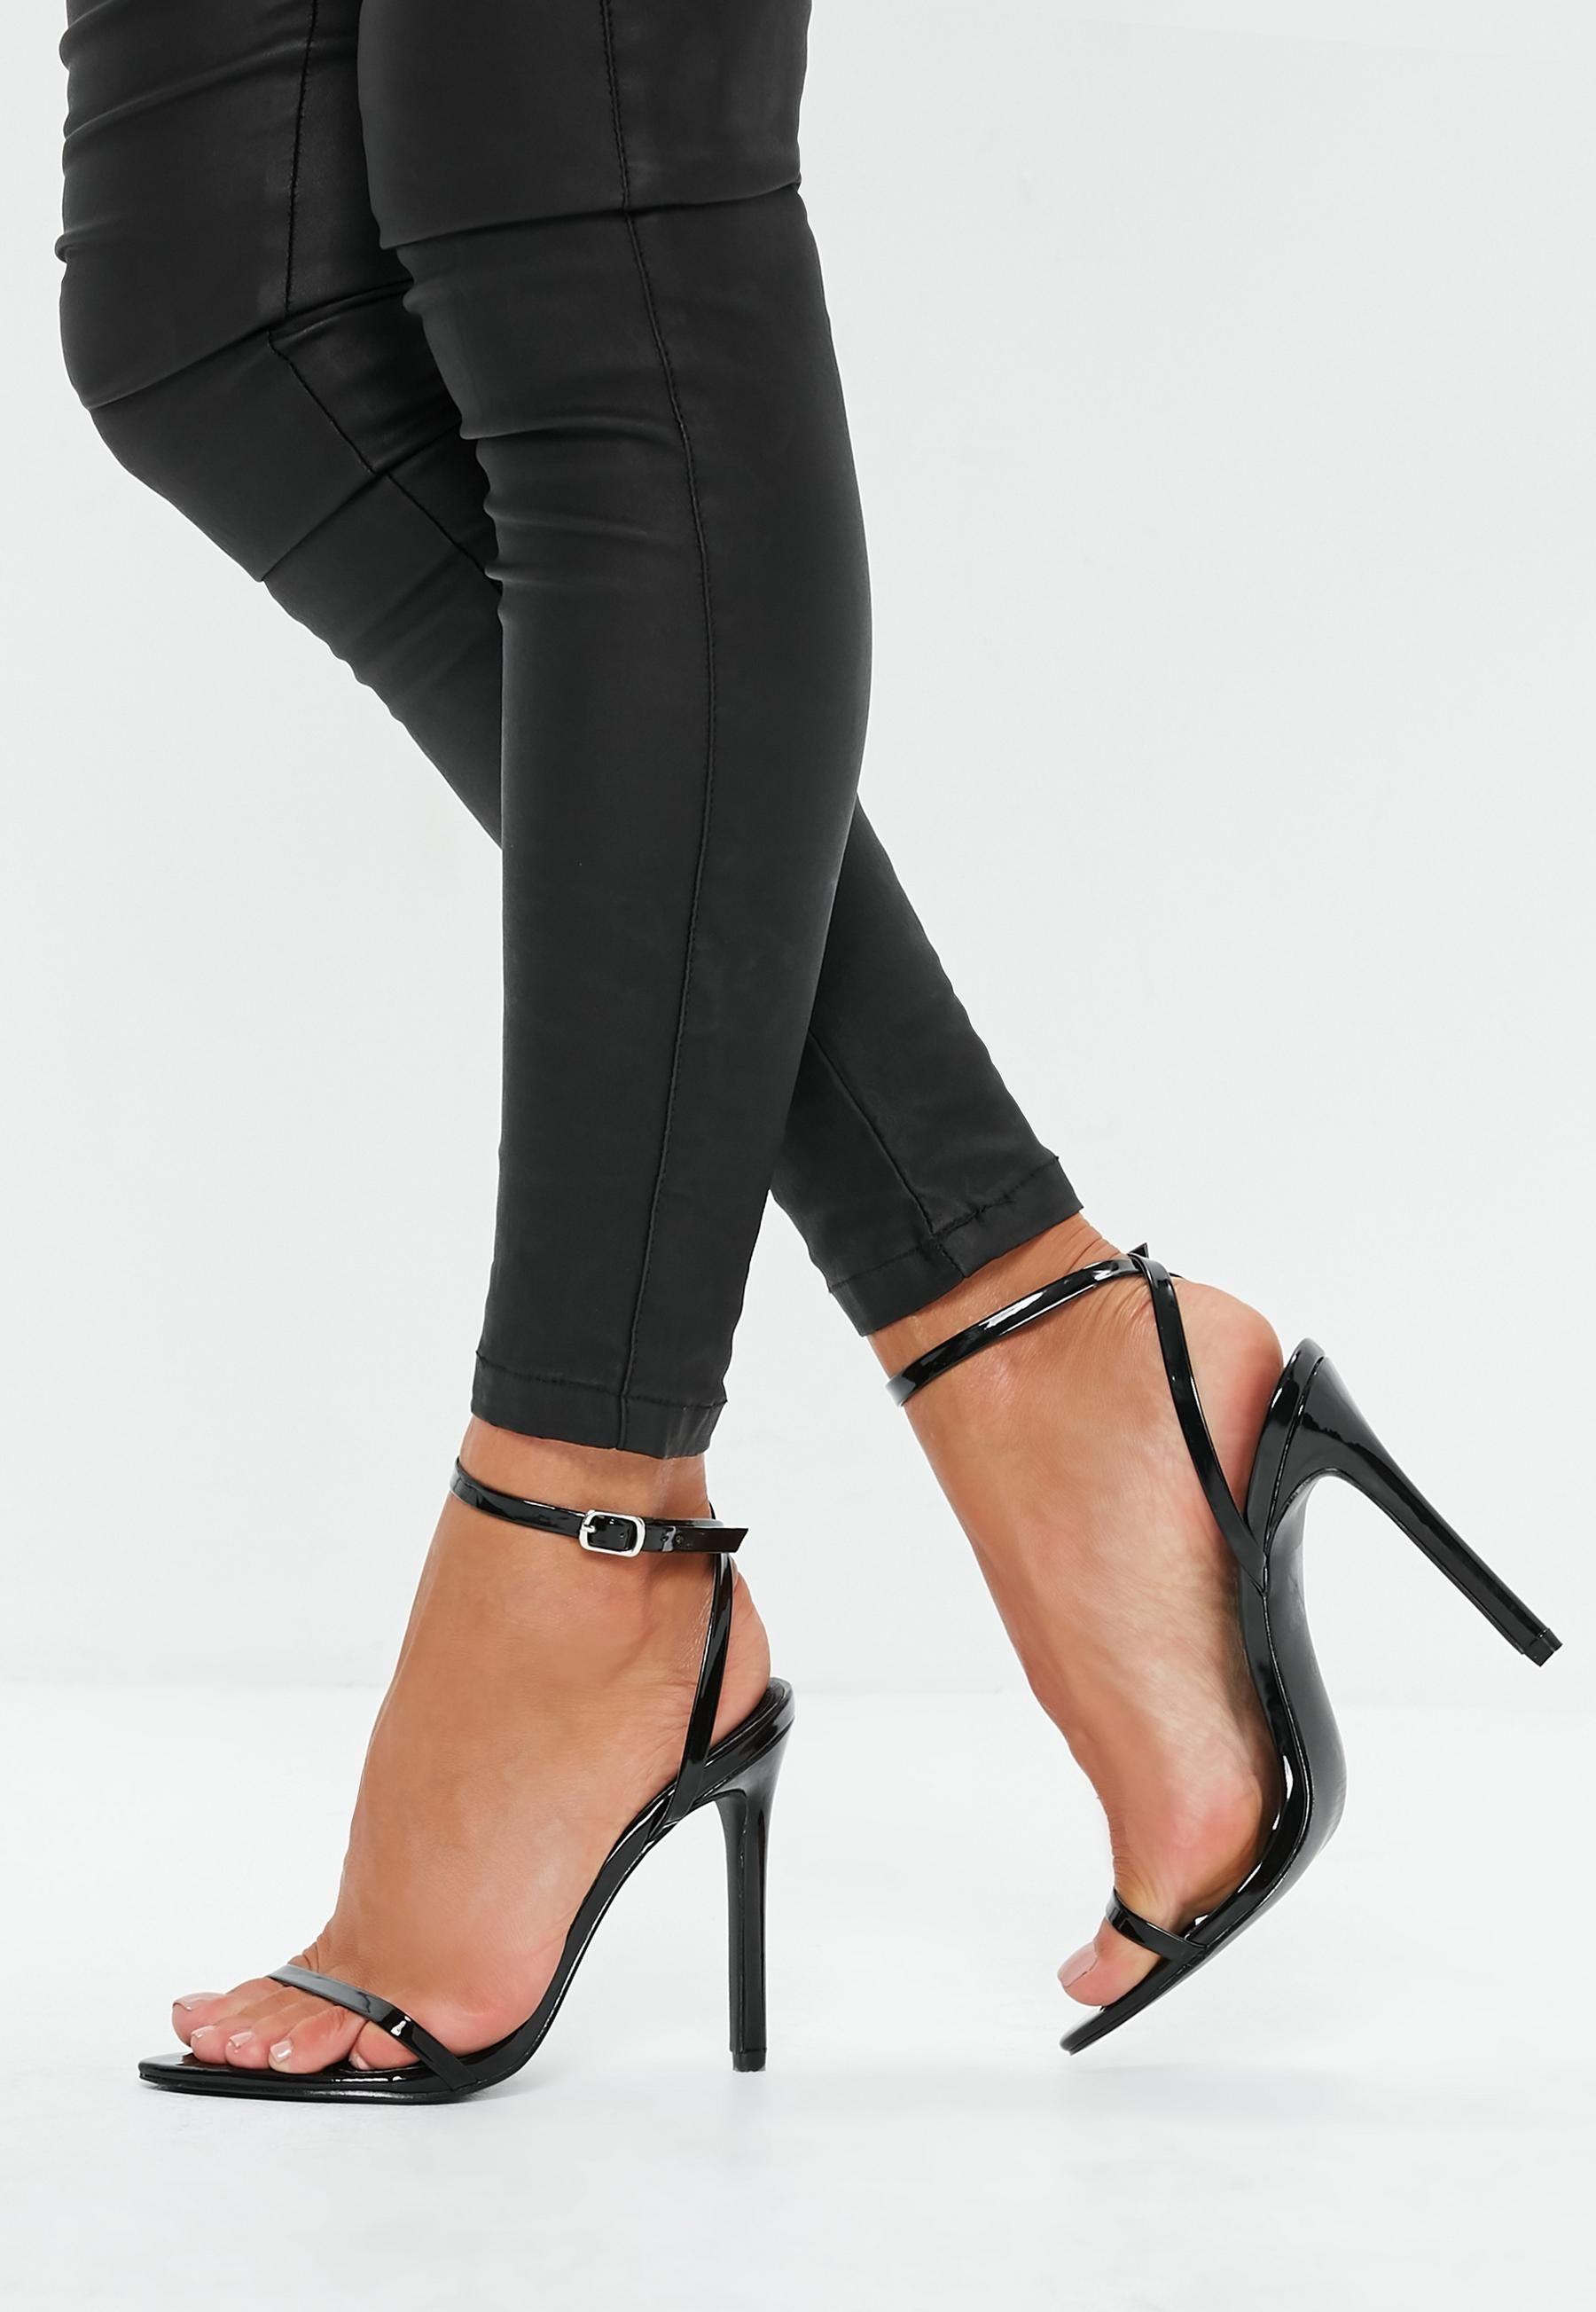 087317f29b8d Missguided Black Pointed Toe Barely There Patent Heels in 2019 ...